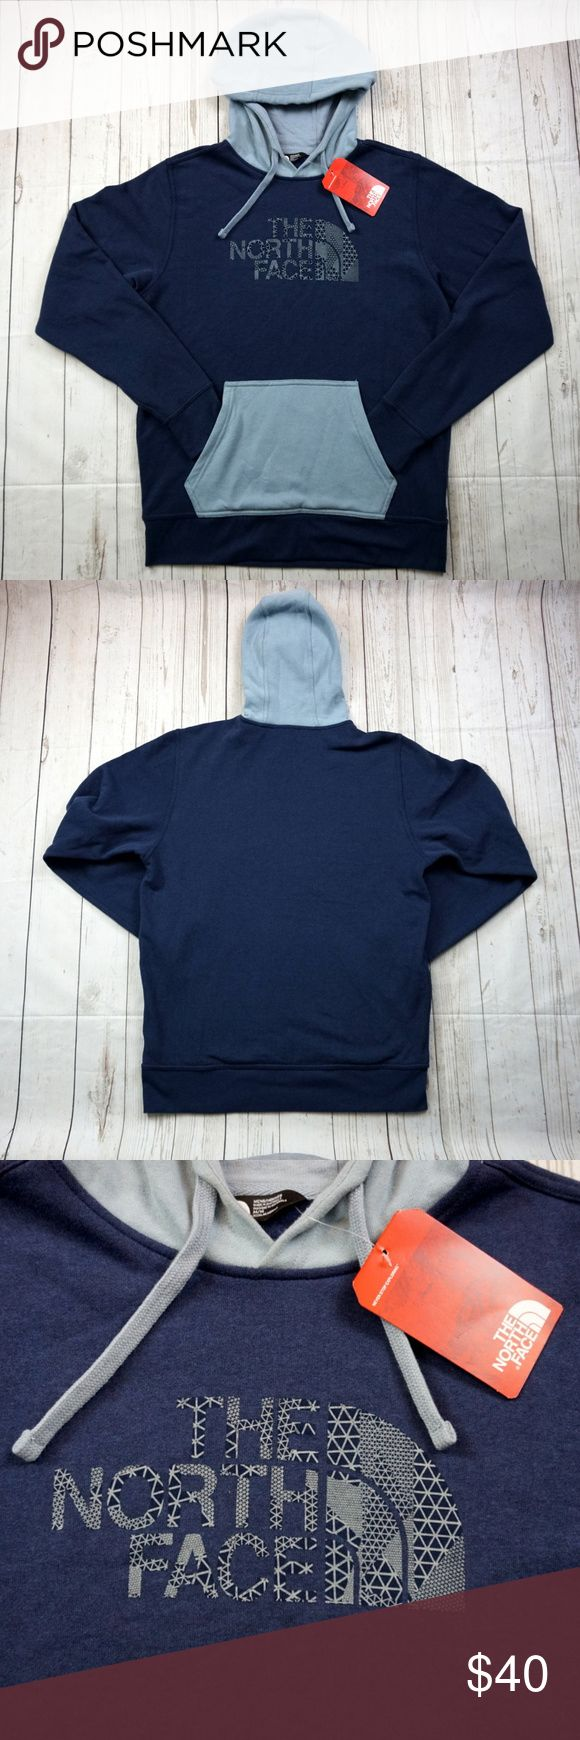 "North Face Sweatshirt Navy Blue, Grey XL, Hoodie North Face Sweatshirt Navy Blue, Grey XL, Hoodie  Brand: The North Face Size: Men's Medium Material: Cotton, Polyester  Detailed Measurements: (Front Side of Garment has been measured laying flat on a table)  Measurements  Sleeves:    		 27.5"" inches  Chest:		         22"" inches Length:      		 29.5"" inches  Ships in 1 business day or less from a clean and smoke free environment. Bundle to Save!  Thanks! The North Face Shirts Sweatshirts…"